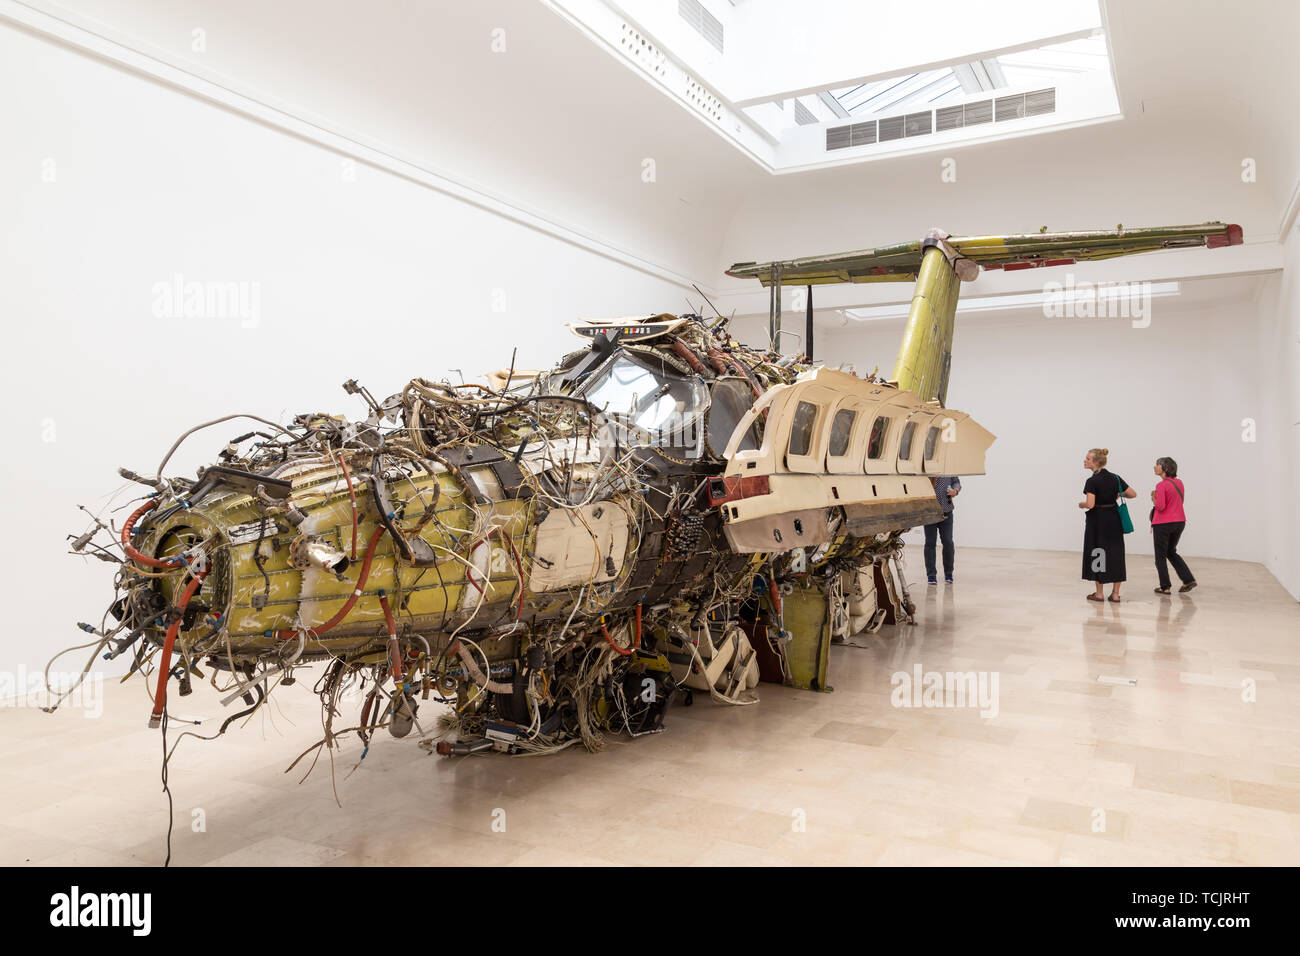 Venice Italy - May 25 2019: Biennale Arte 2019 Flight by Troman Stanczak is a surrealist sculpture: an inside-out luxury private aircraft. - Stock Image